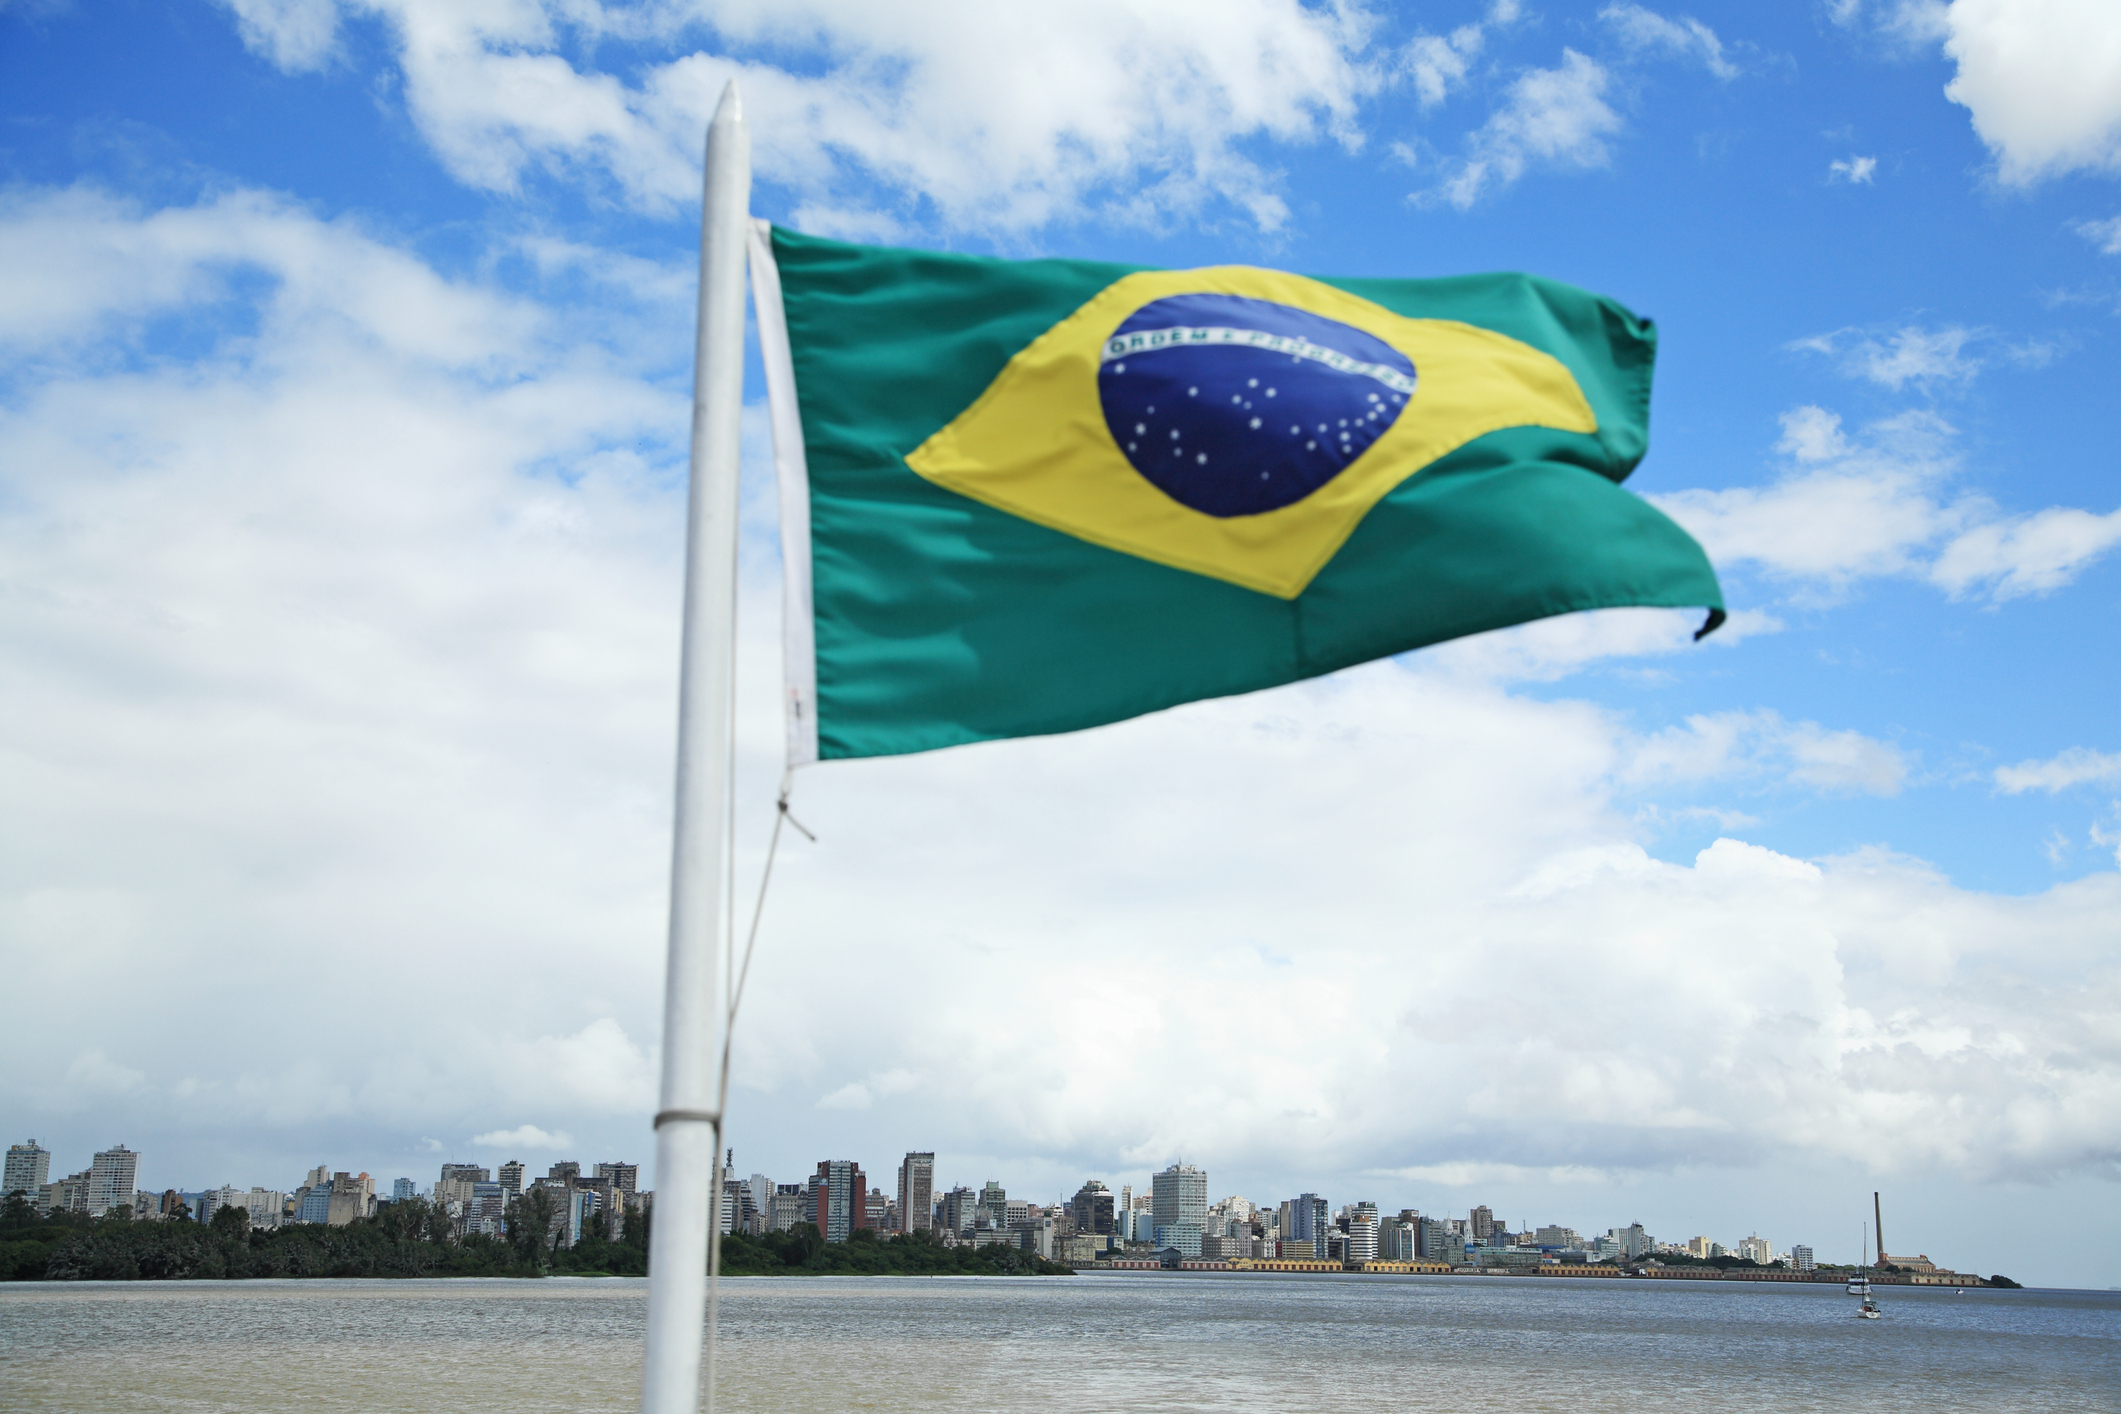 Report: China's Didi to buy Brazil's 99 in $1B deal to take on Latin America